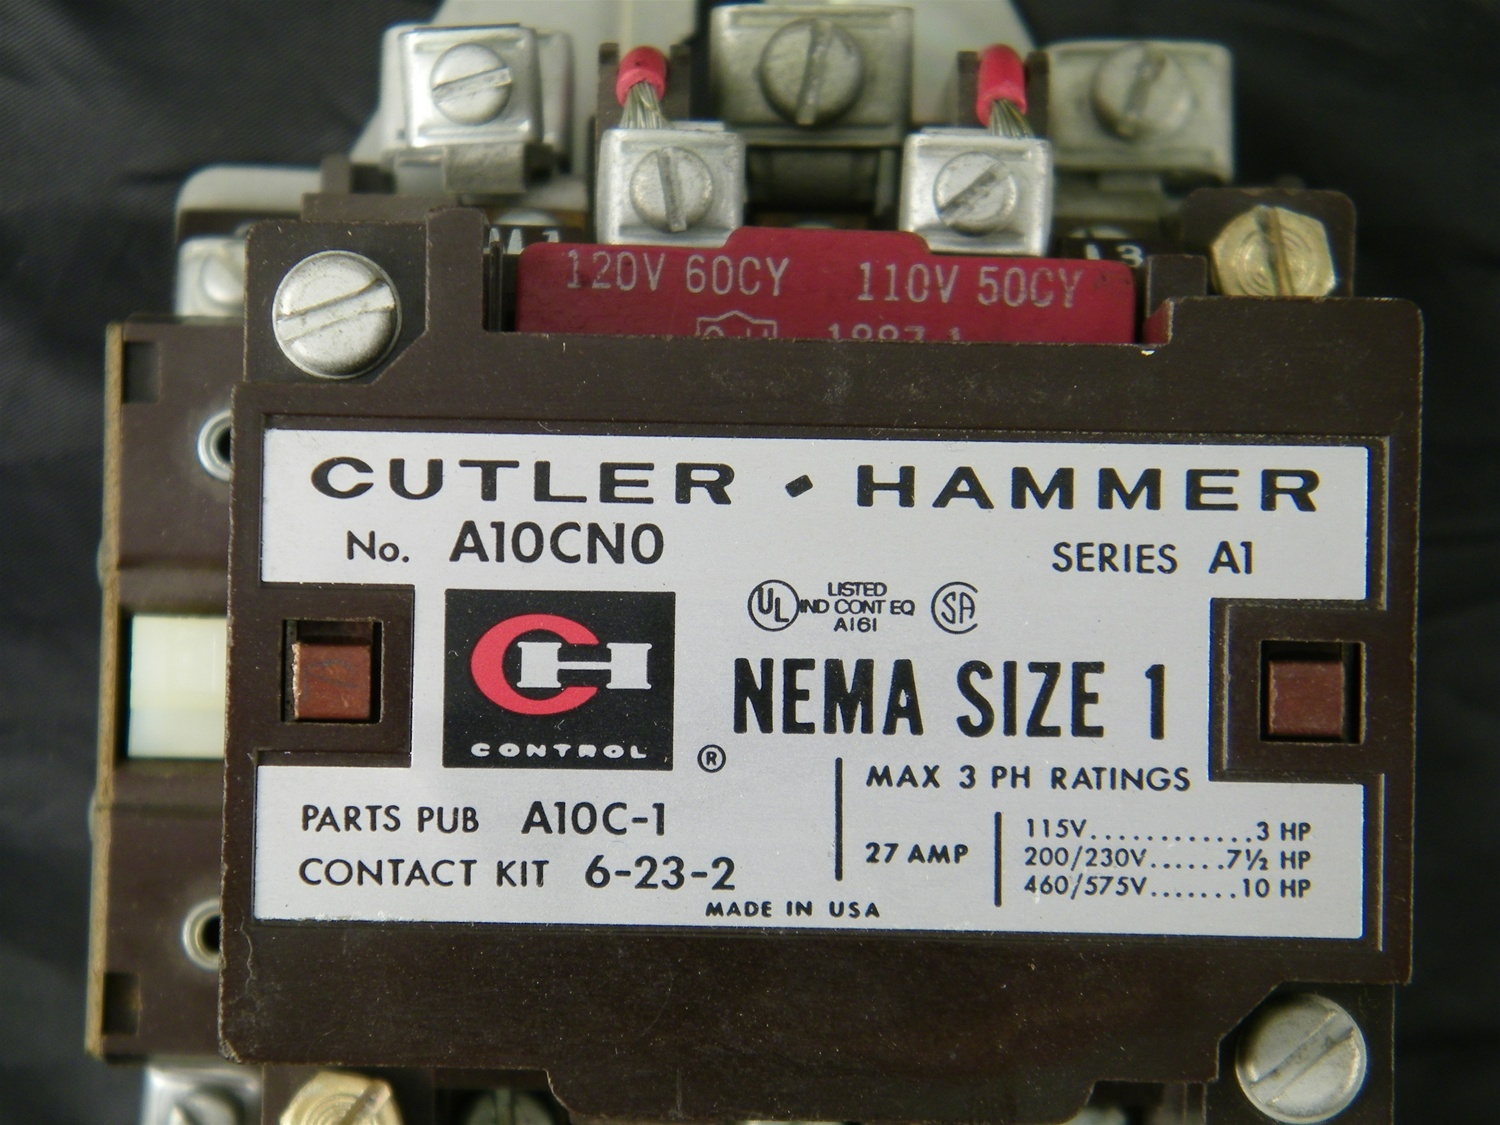 Cutler Hammer Type M Relay Wiring Diagram 41 Images A10cno A10cn0